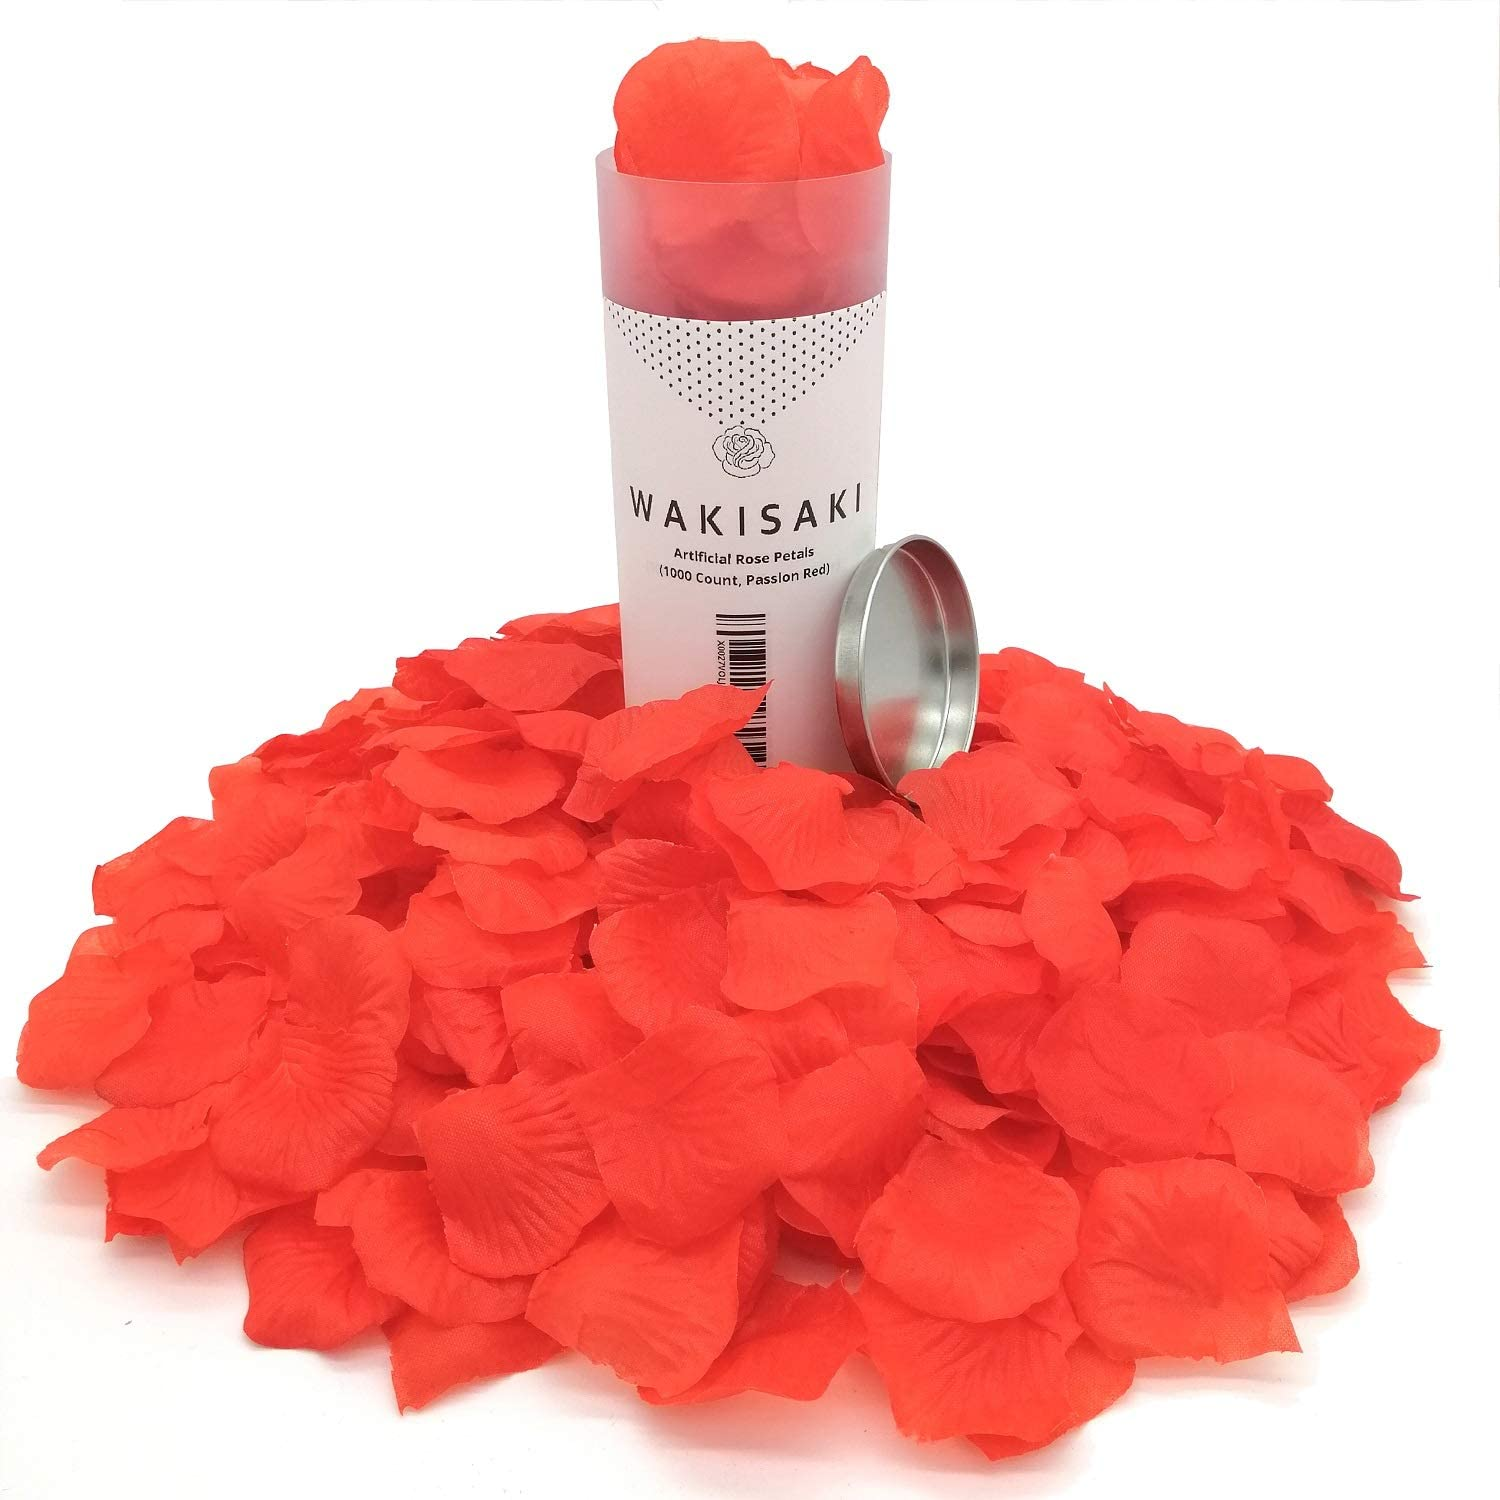 Wedding Party Event in Bulk WAKISAKI Artificial Fake Rose Petals for Romantic Night Decoration 1000 Count, Dark Red Separated, Deodorized